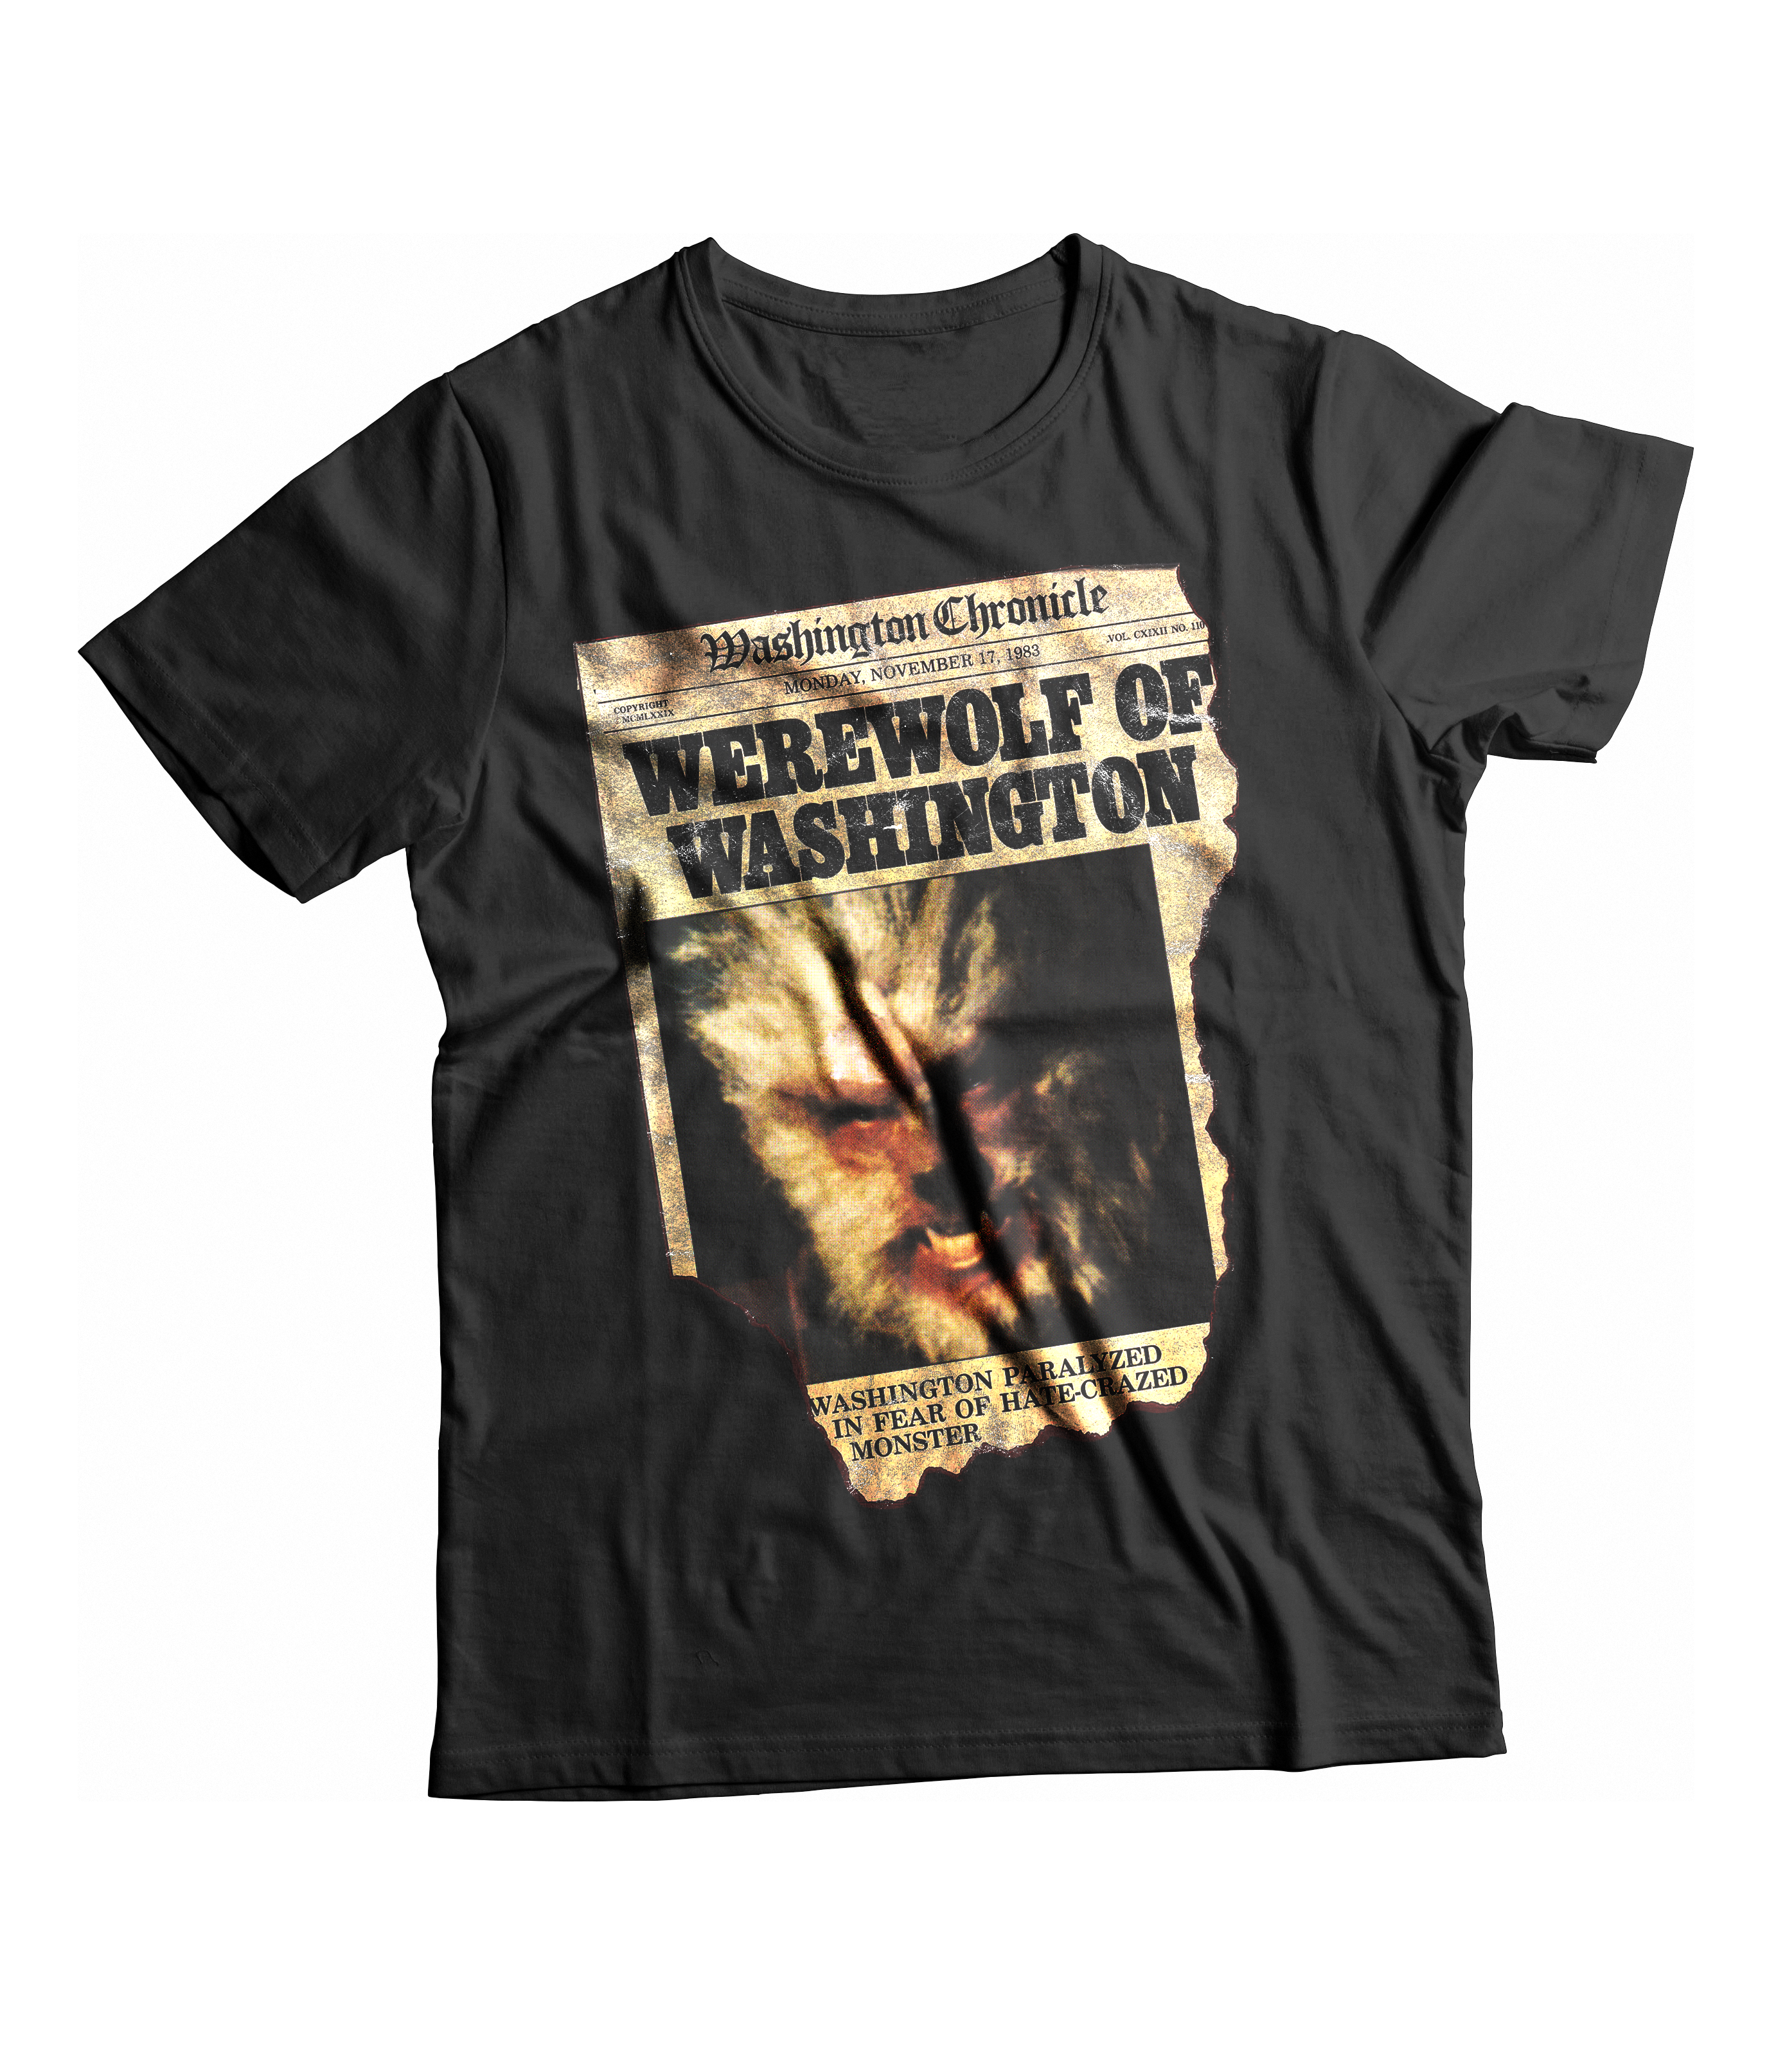 RAYGUN Werewolf of Washington Vintage Heather Blend Charcoal T-Shirt